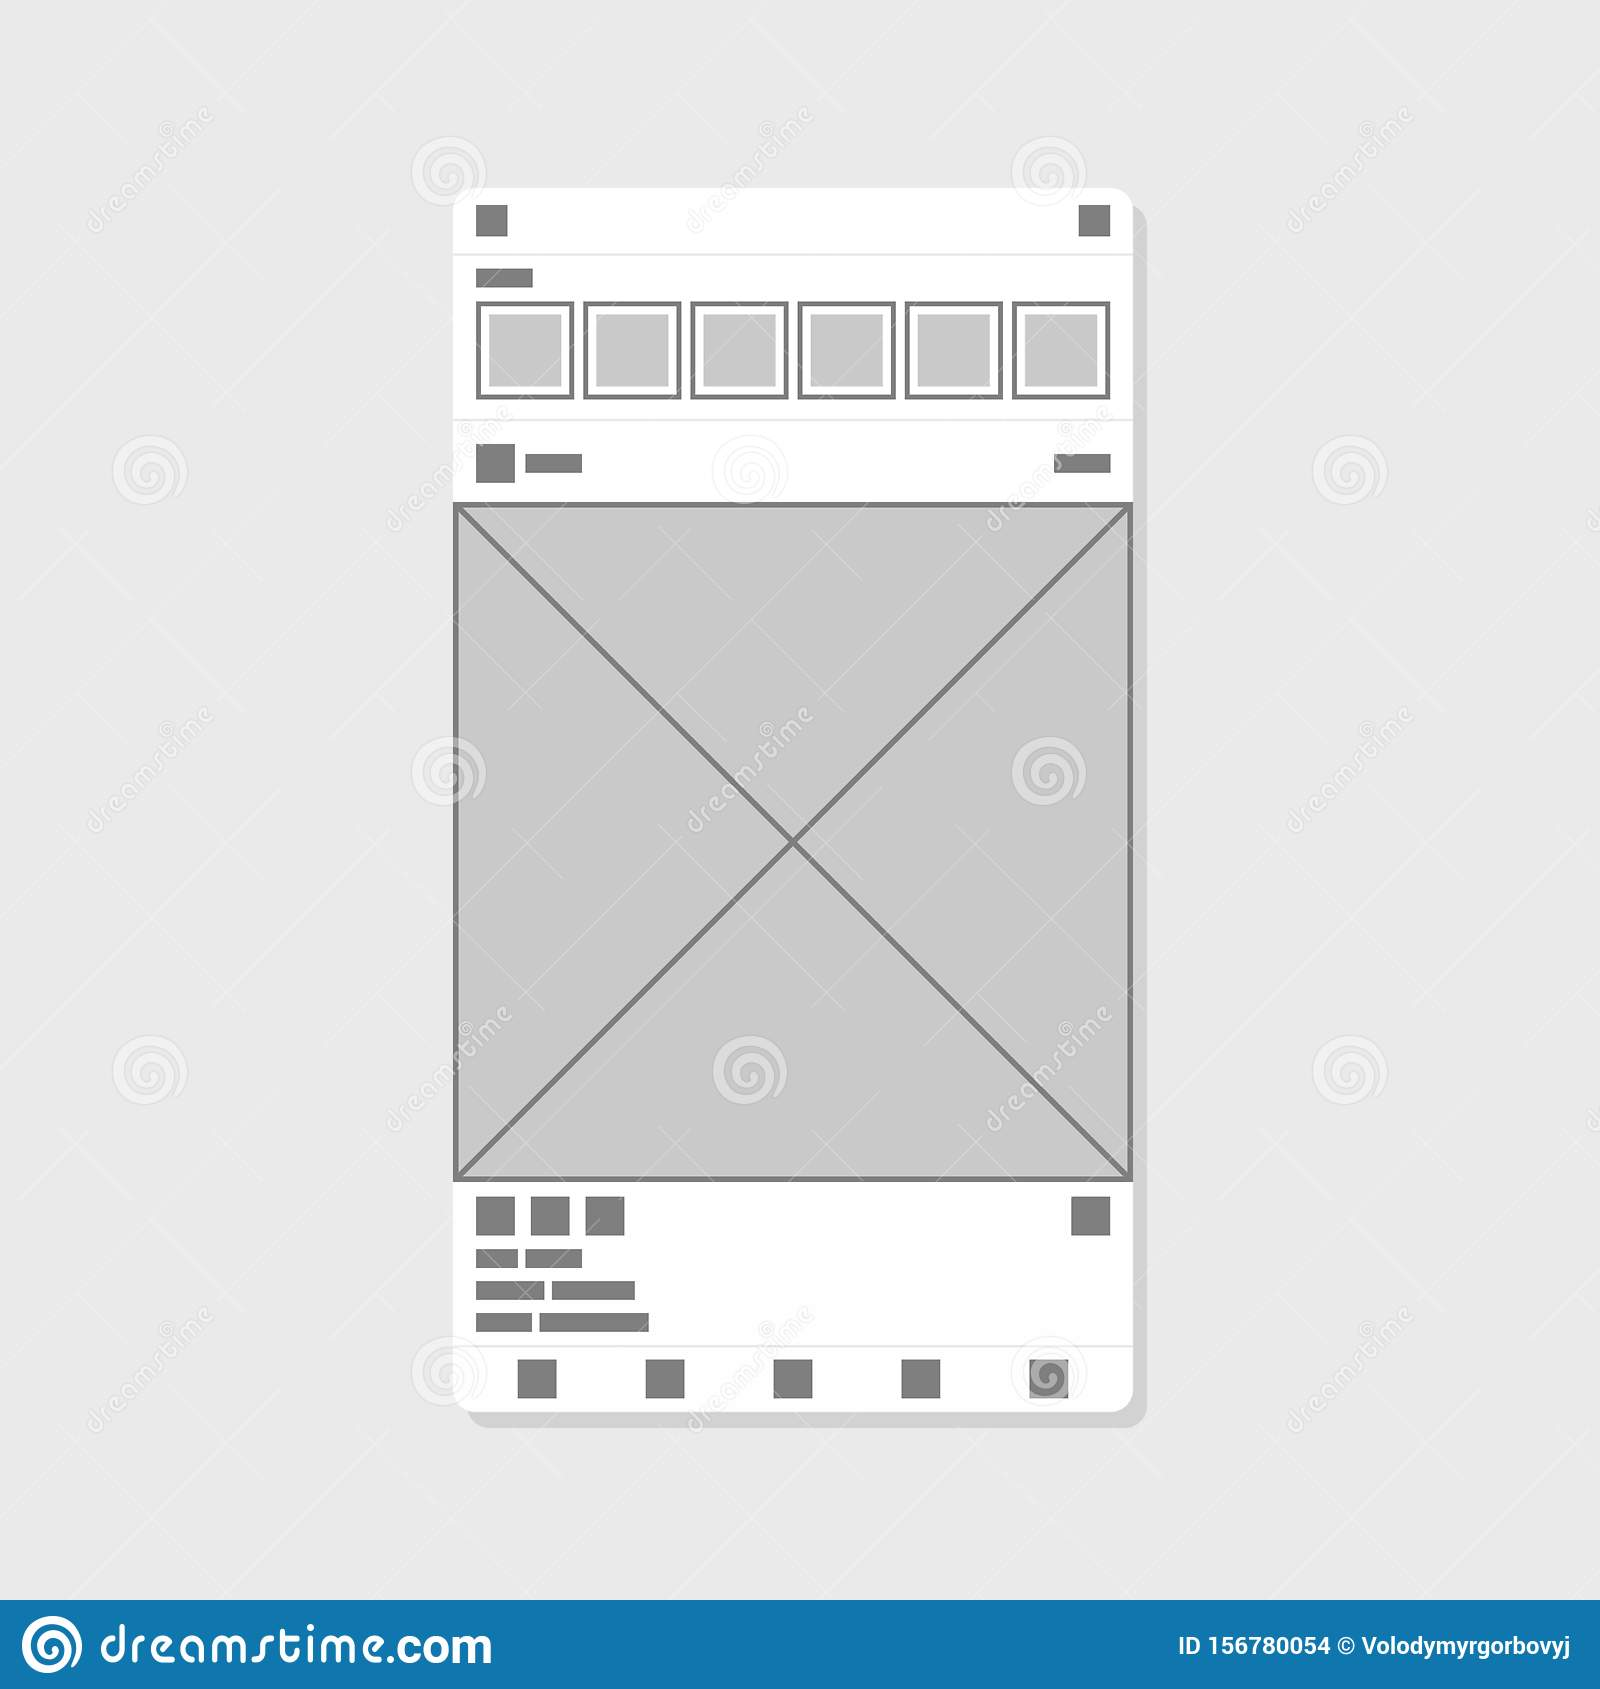 Wireframe Diagram Examples